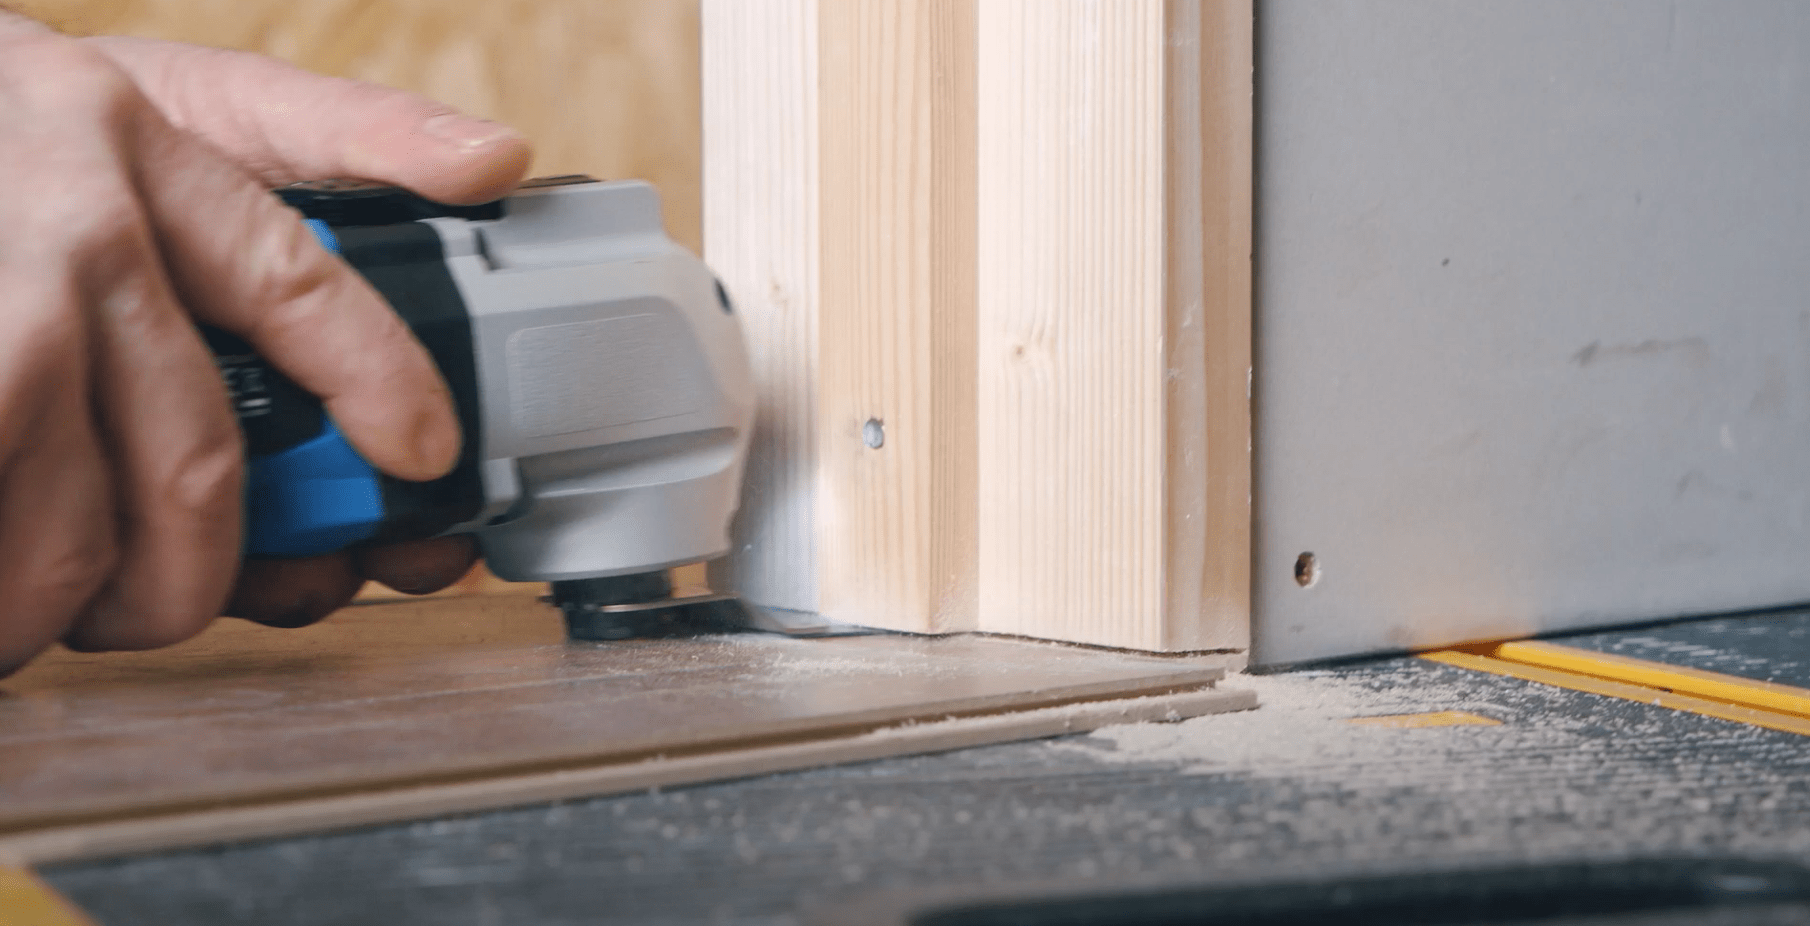 27/3/2020· undercutting door frames for dummies when you installing hardwood see also floor and decor distribution center pooler ga how to install laminate flooring around doors learning How To Undercut A Door Frame Smart Tool Group